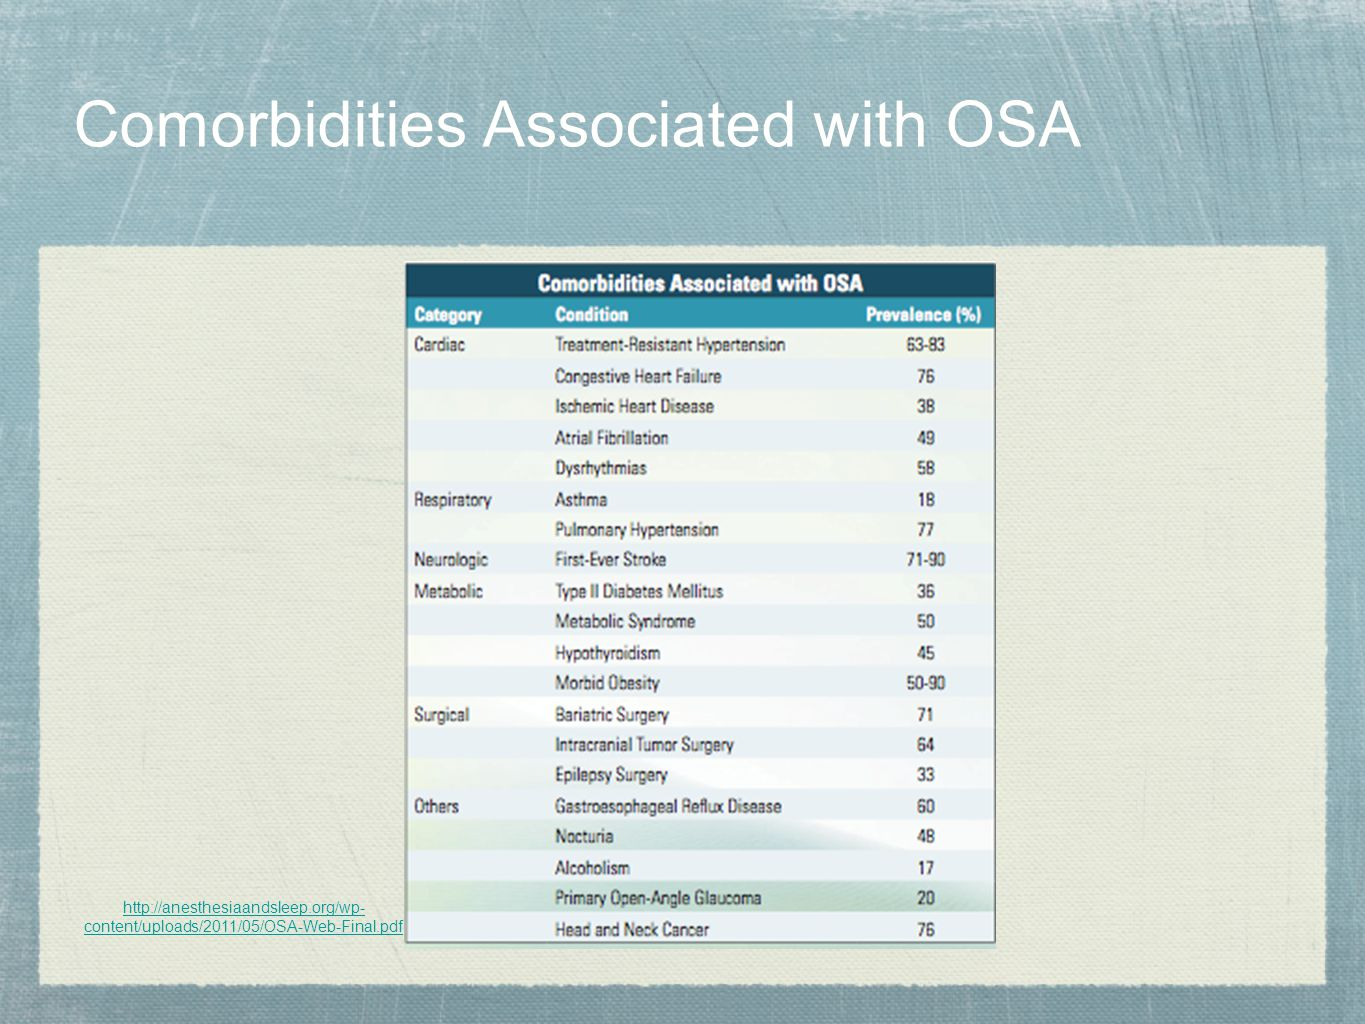 Comorbidities Associated with OSA